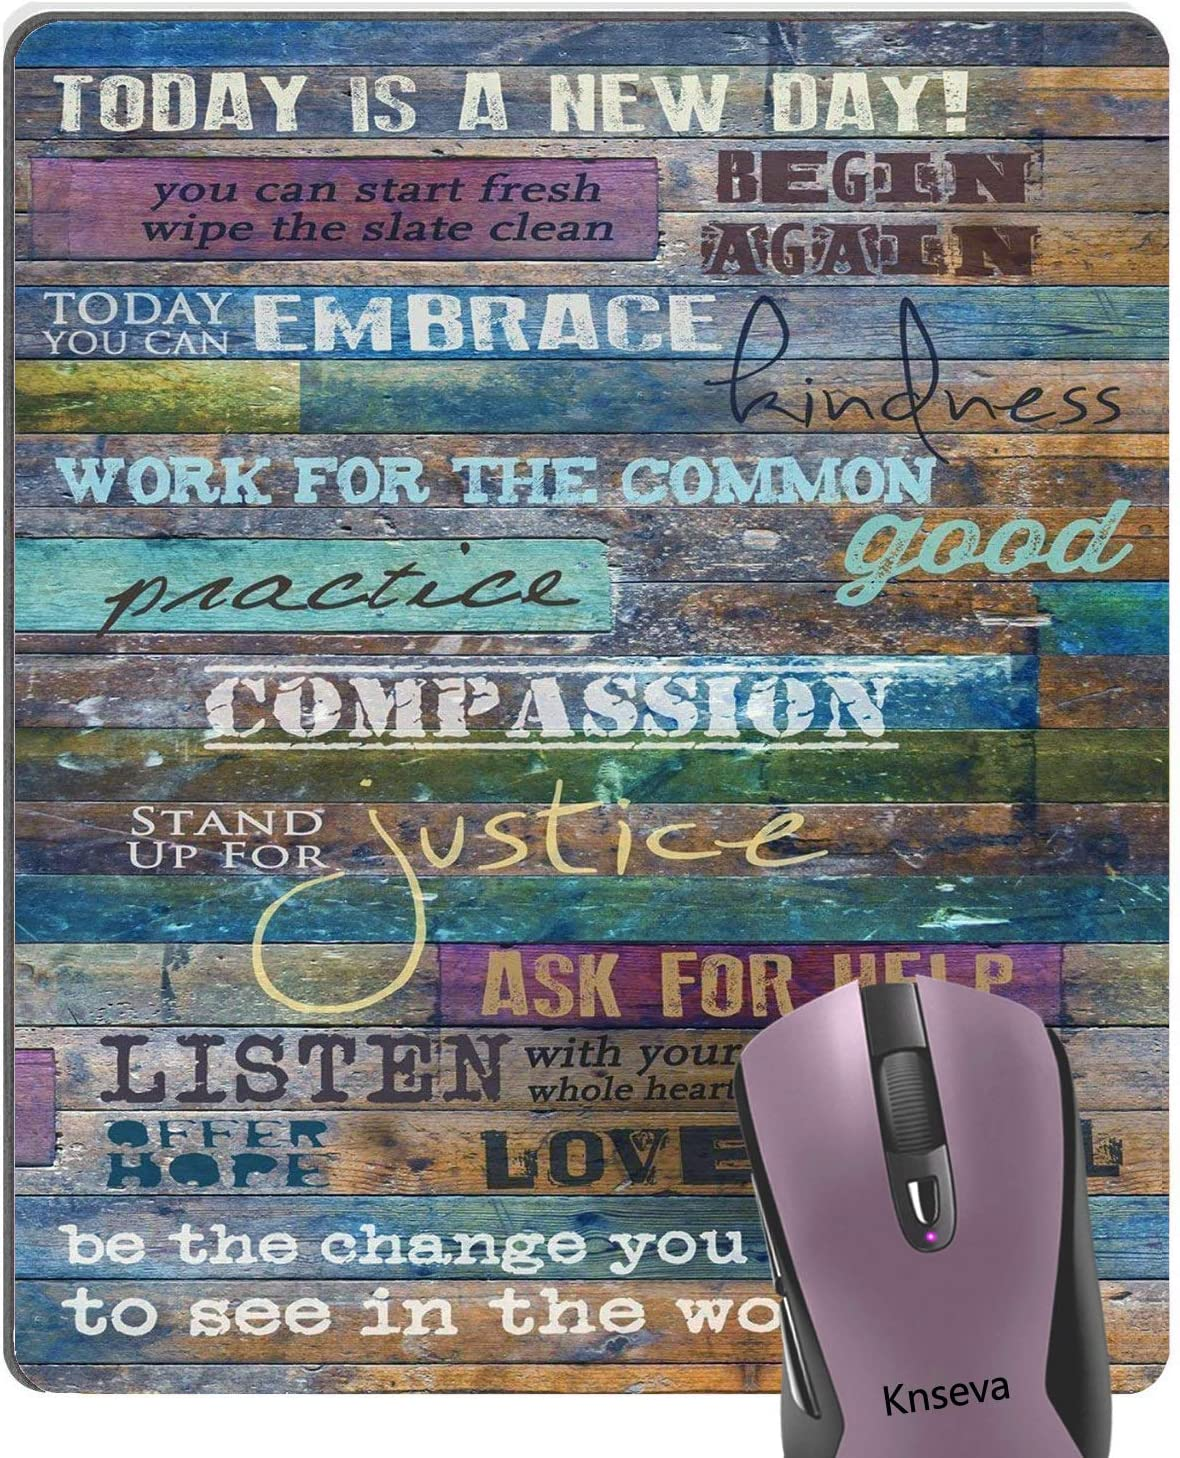 Knseva Inspirational Quotes Vintage Rustic Barn Wood Art Mouse Pad Today is a New Day Motivational Quote Mouse Pads